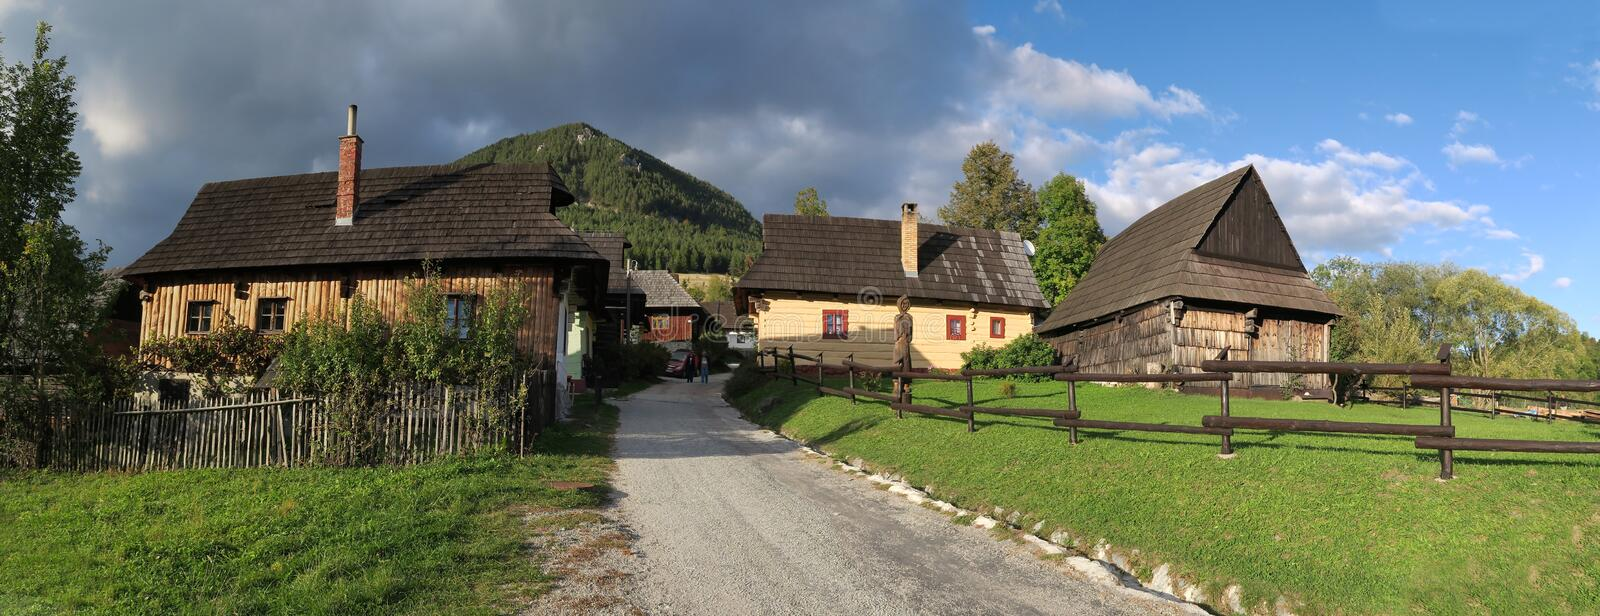 Vlkolinec - slovak village listed on UNESCO World Heritage list. Vlkolinec - slovak village in central Slovakia listed on UNESCO World Heritage list royalty free stock photo